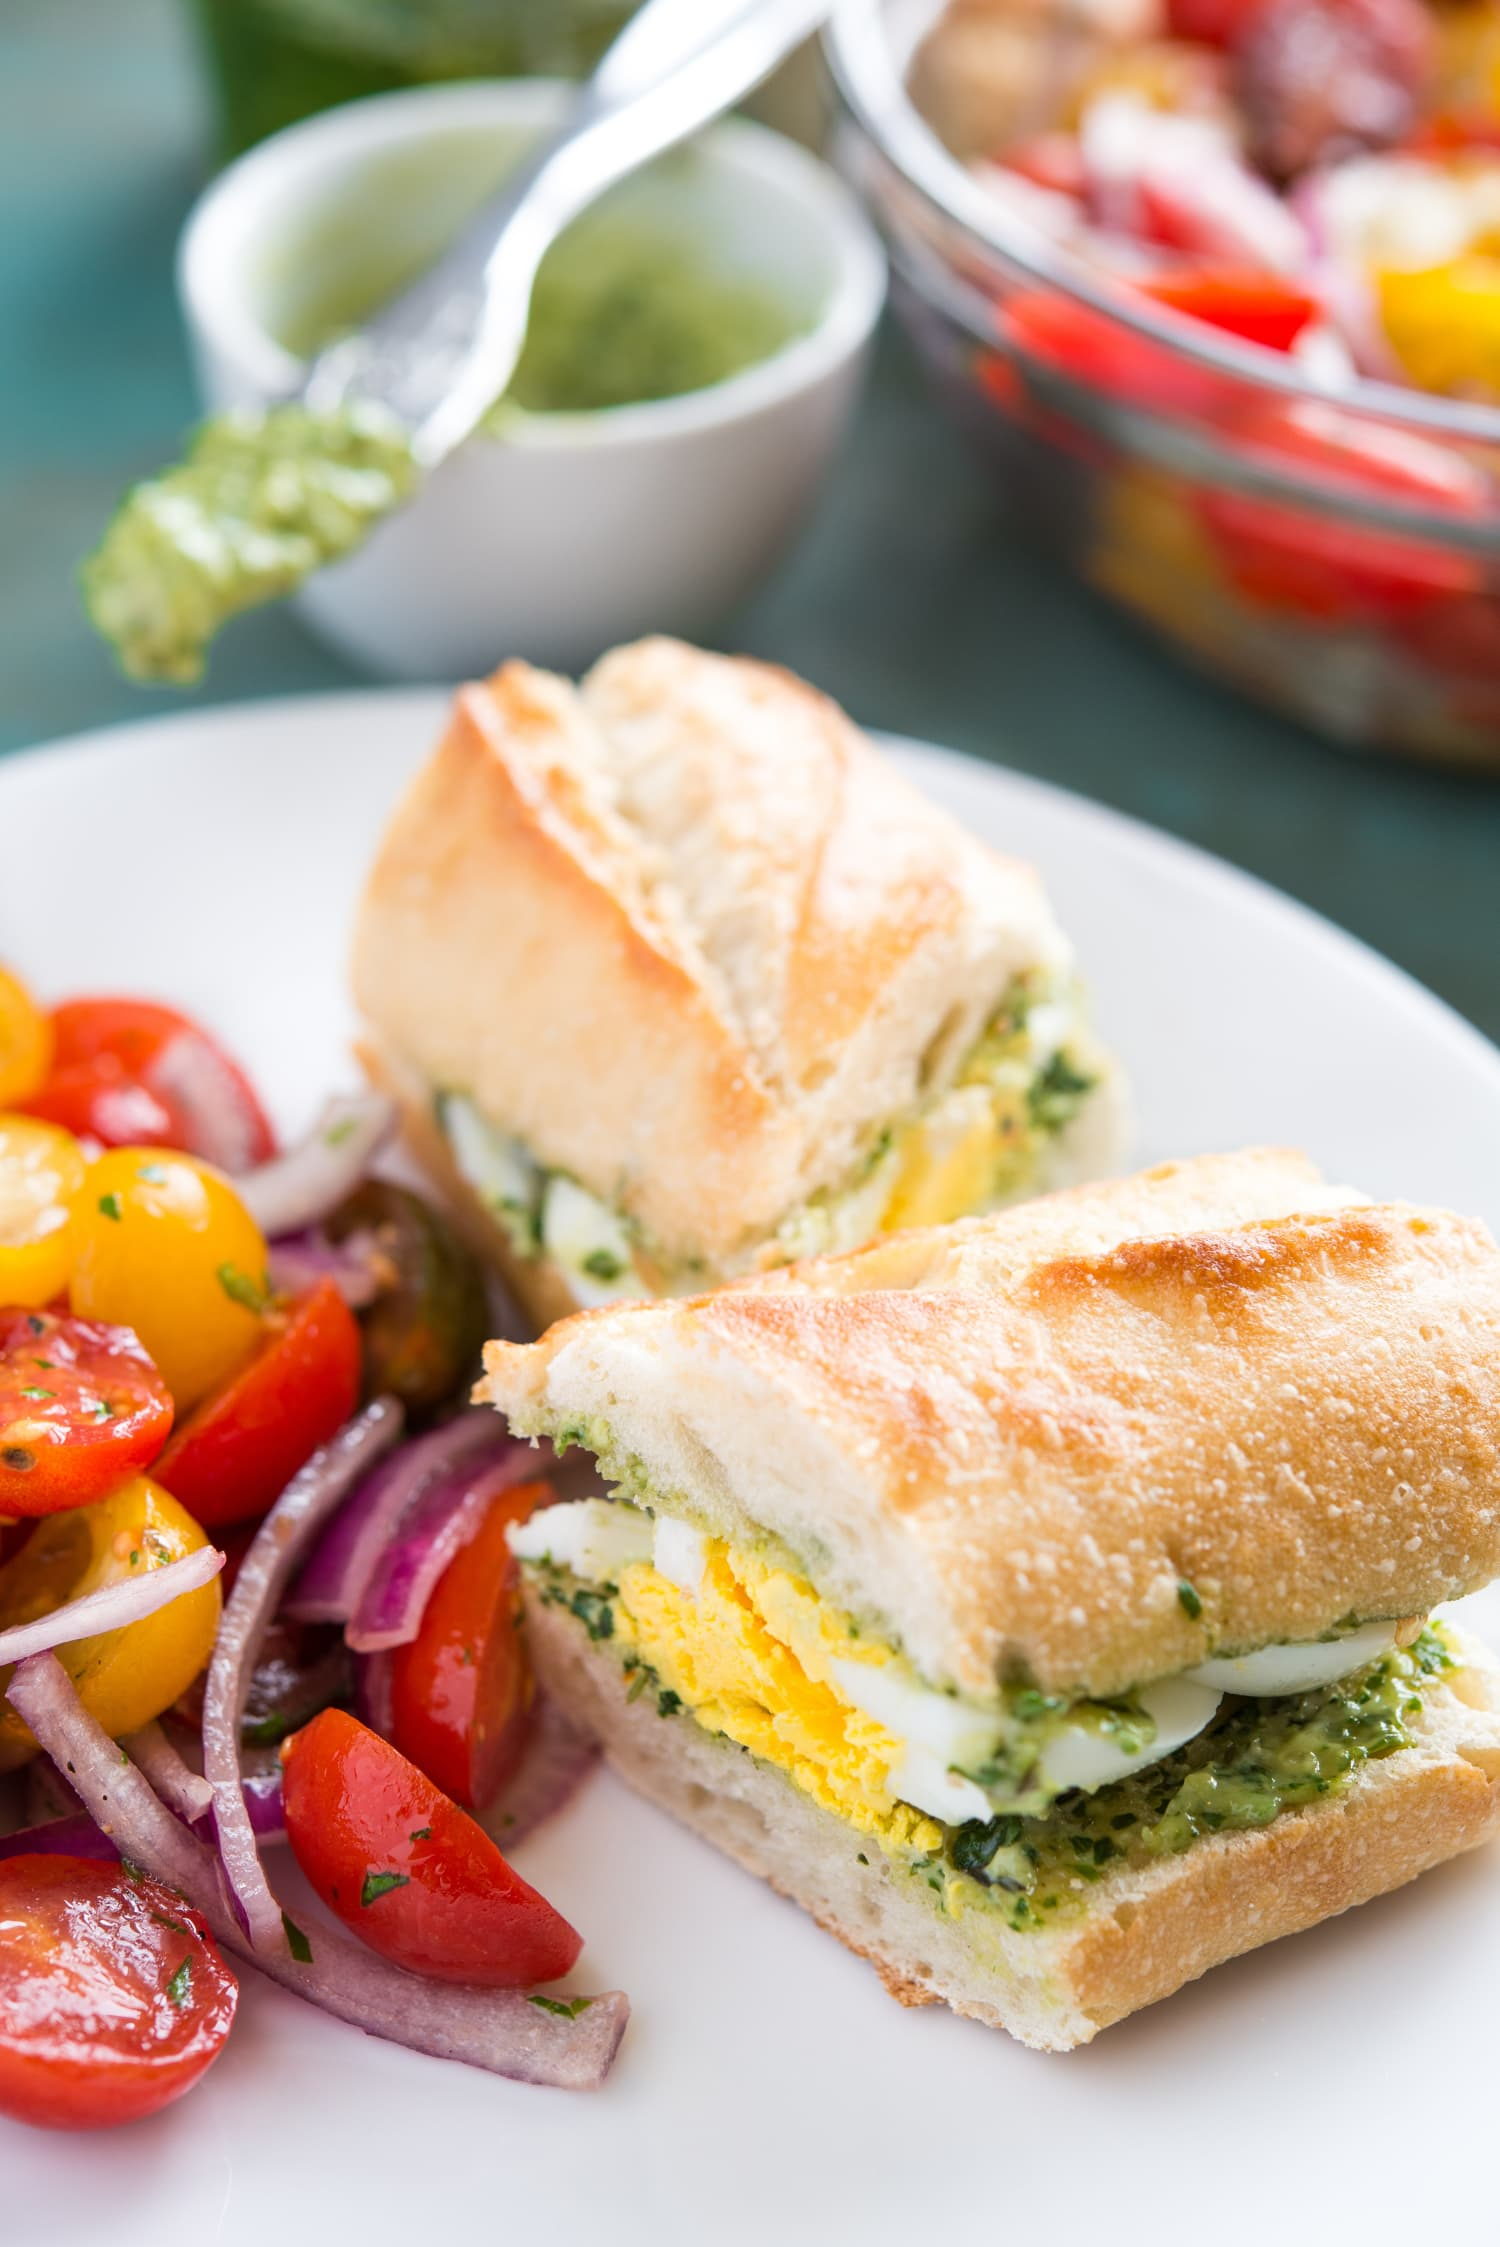 Recipe: Pesto and Egg Baguette Sandwich